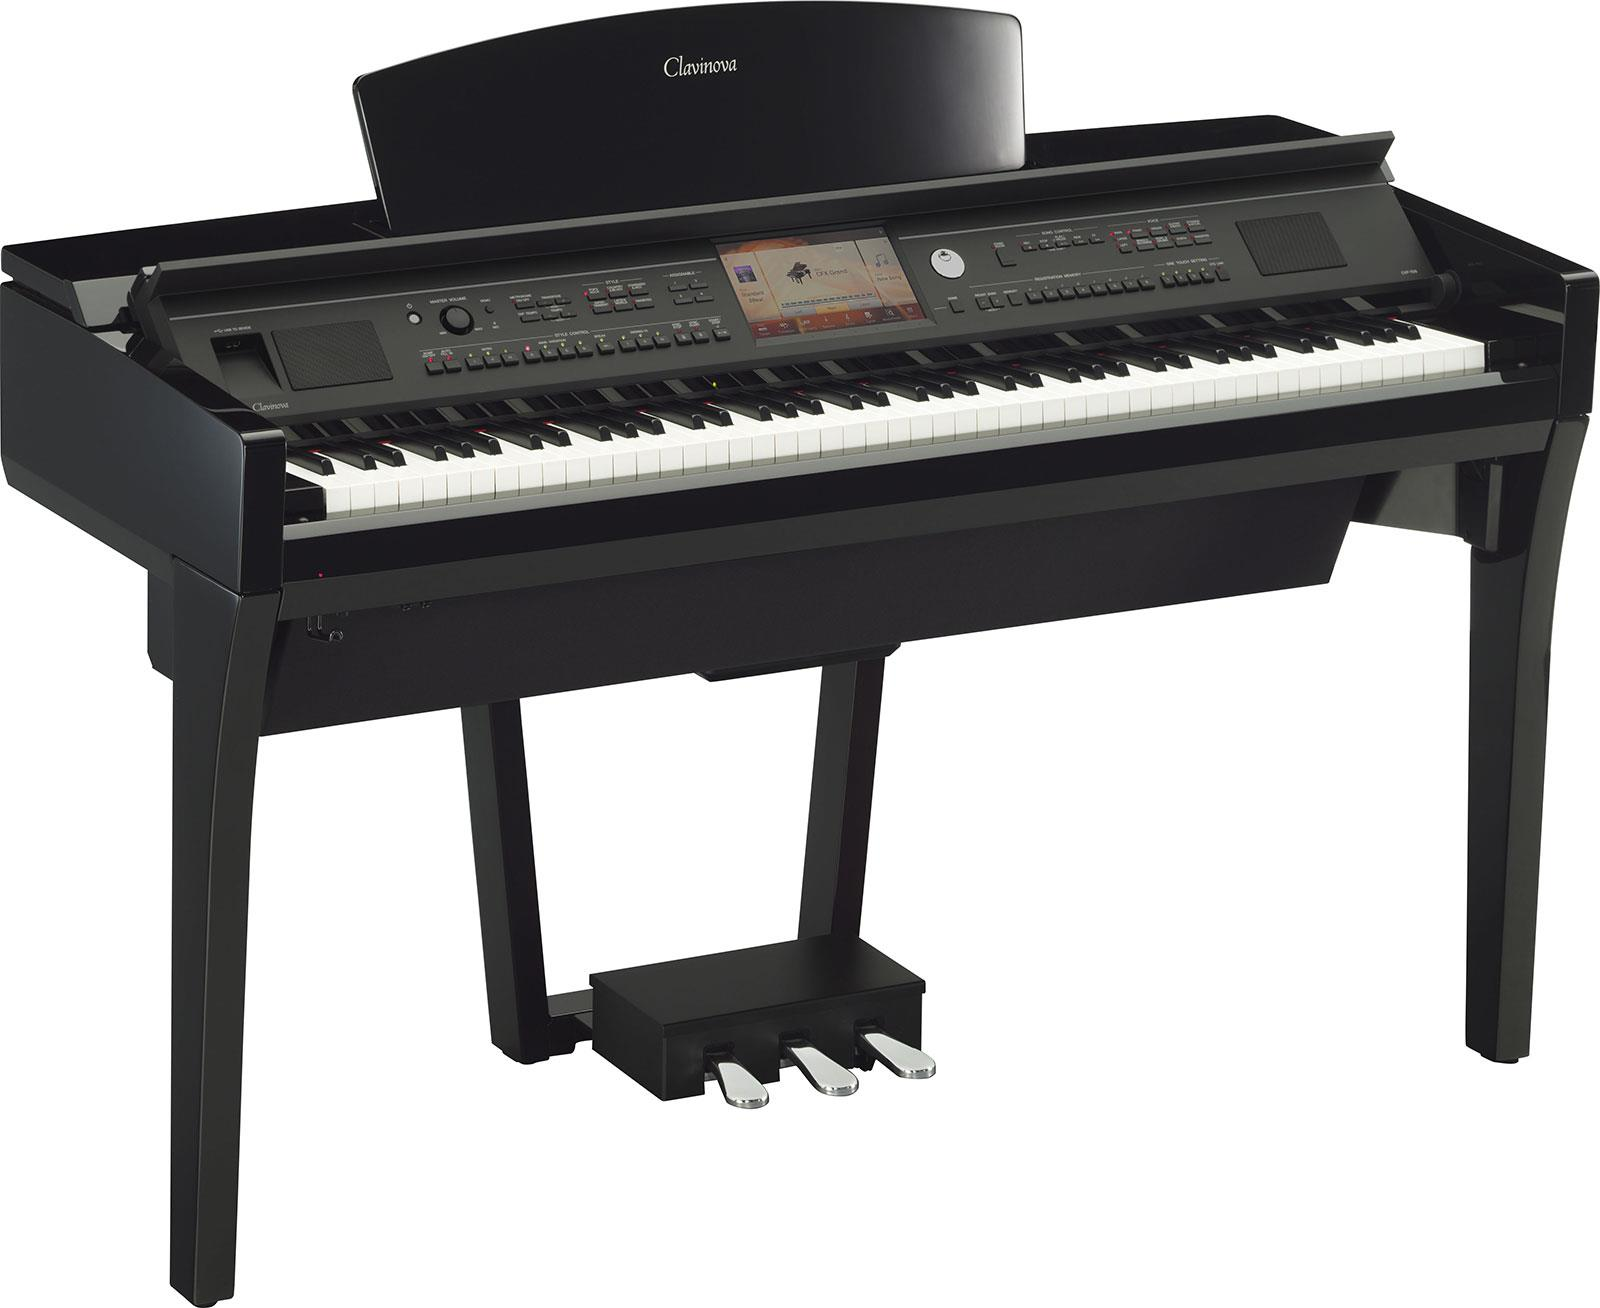 Image Result For Yamaha Clavinova Cvp